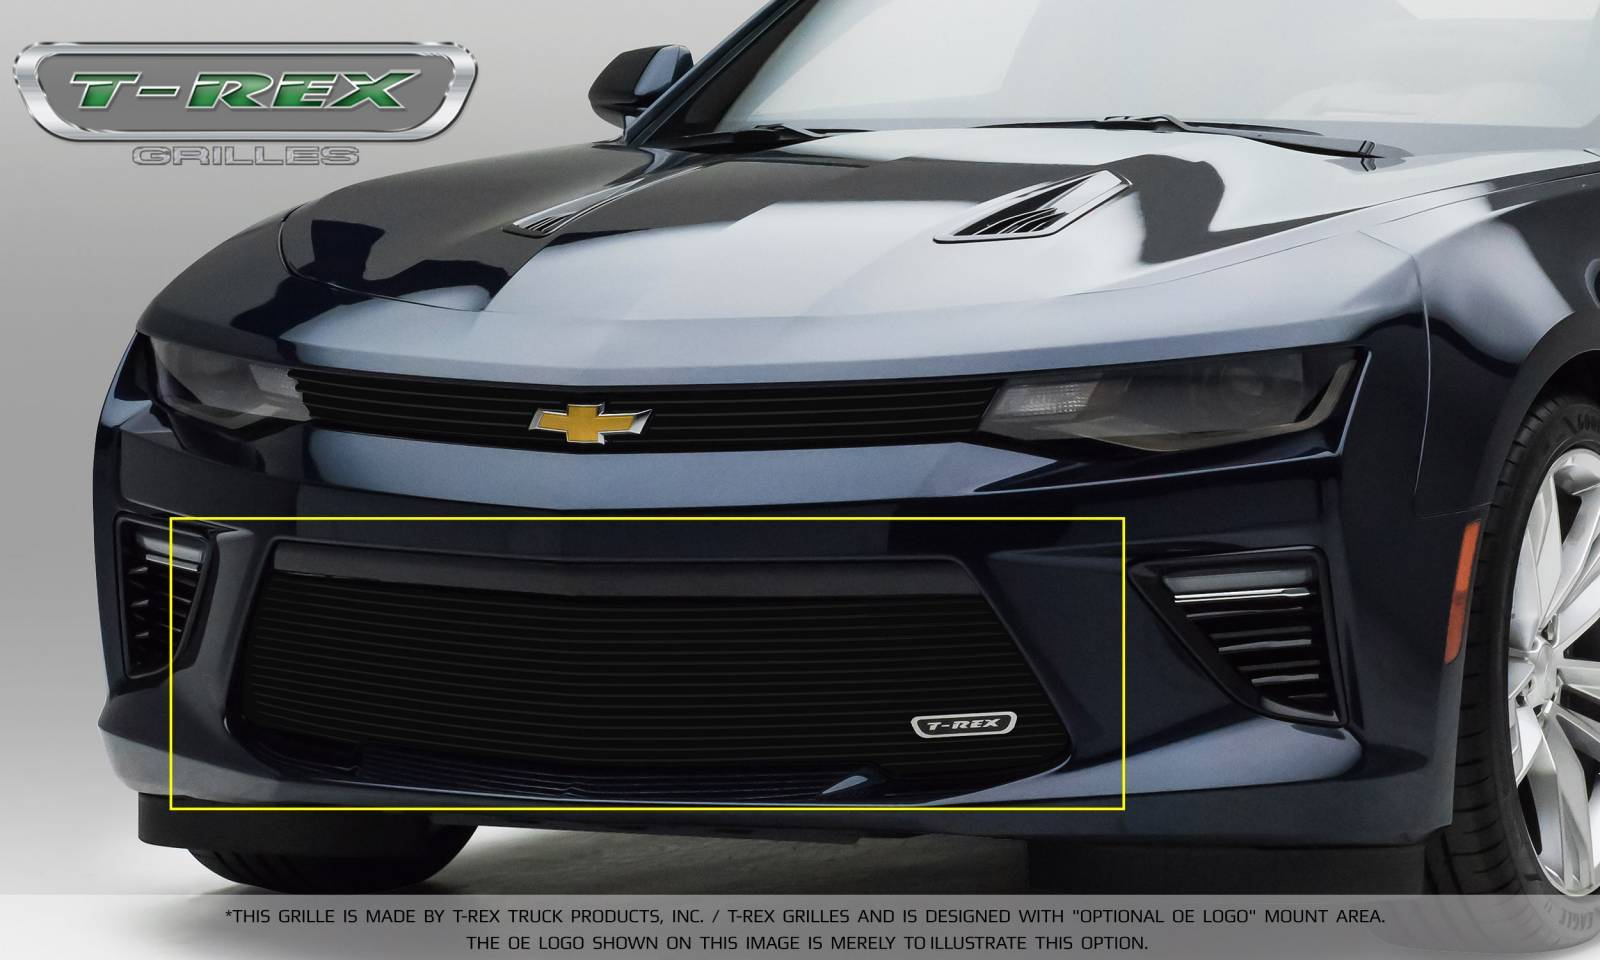 T-REX Chevrolet Camaro V6 Model - Billet Series - Bumper Grille Overlay with Black Powder Coated Finish - Pt # 25033B